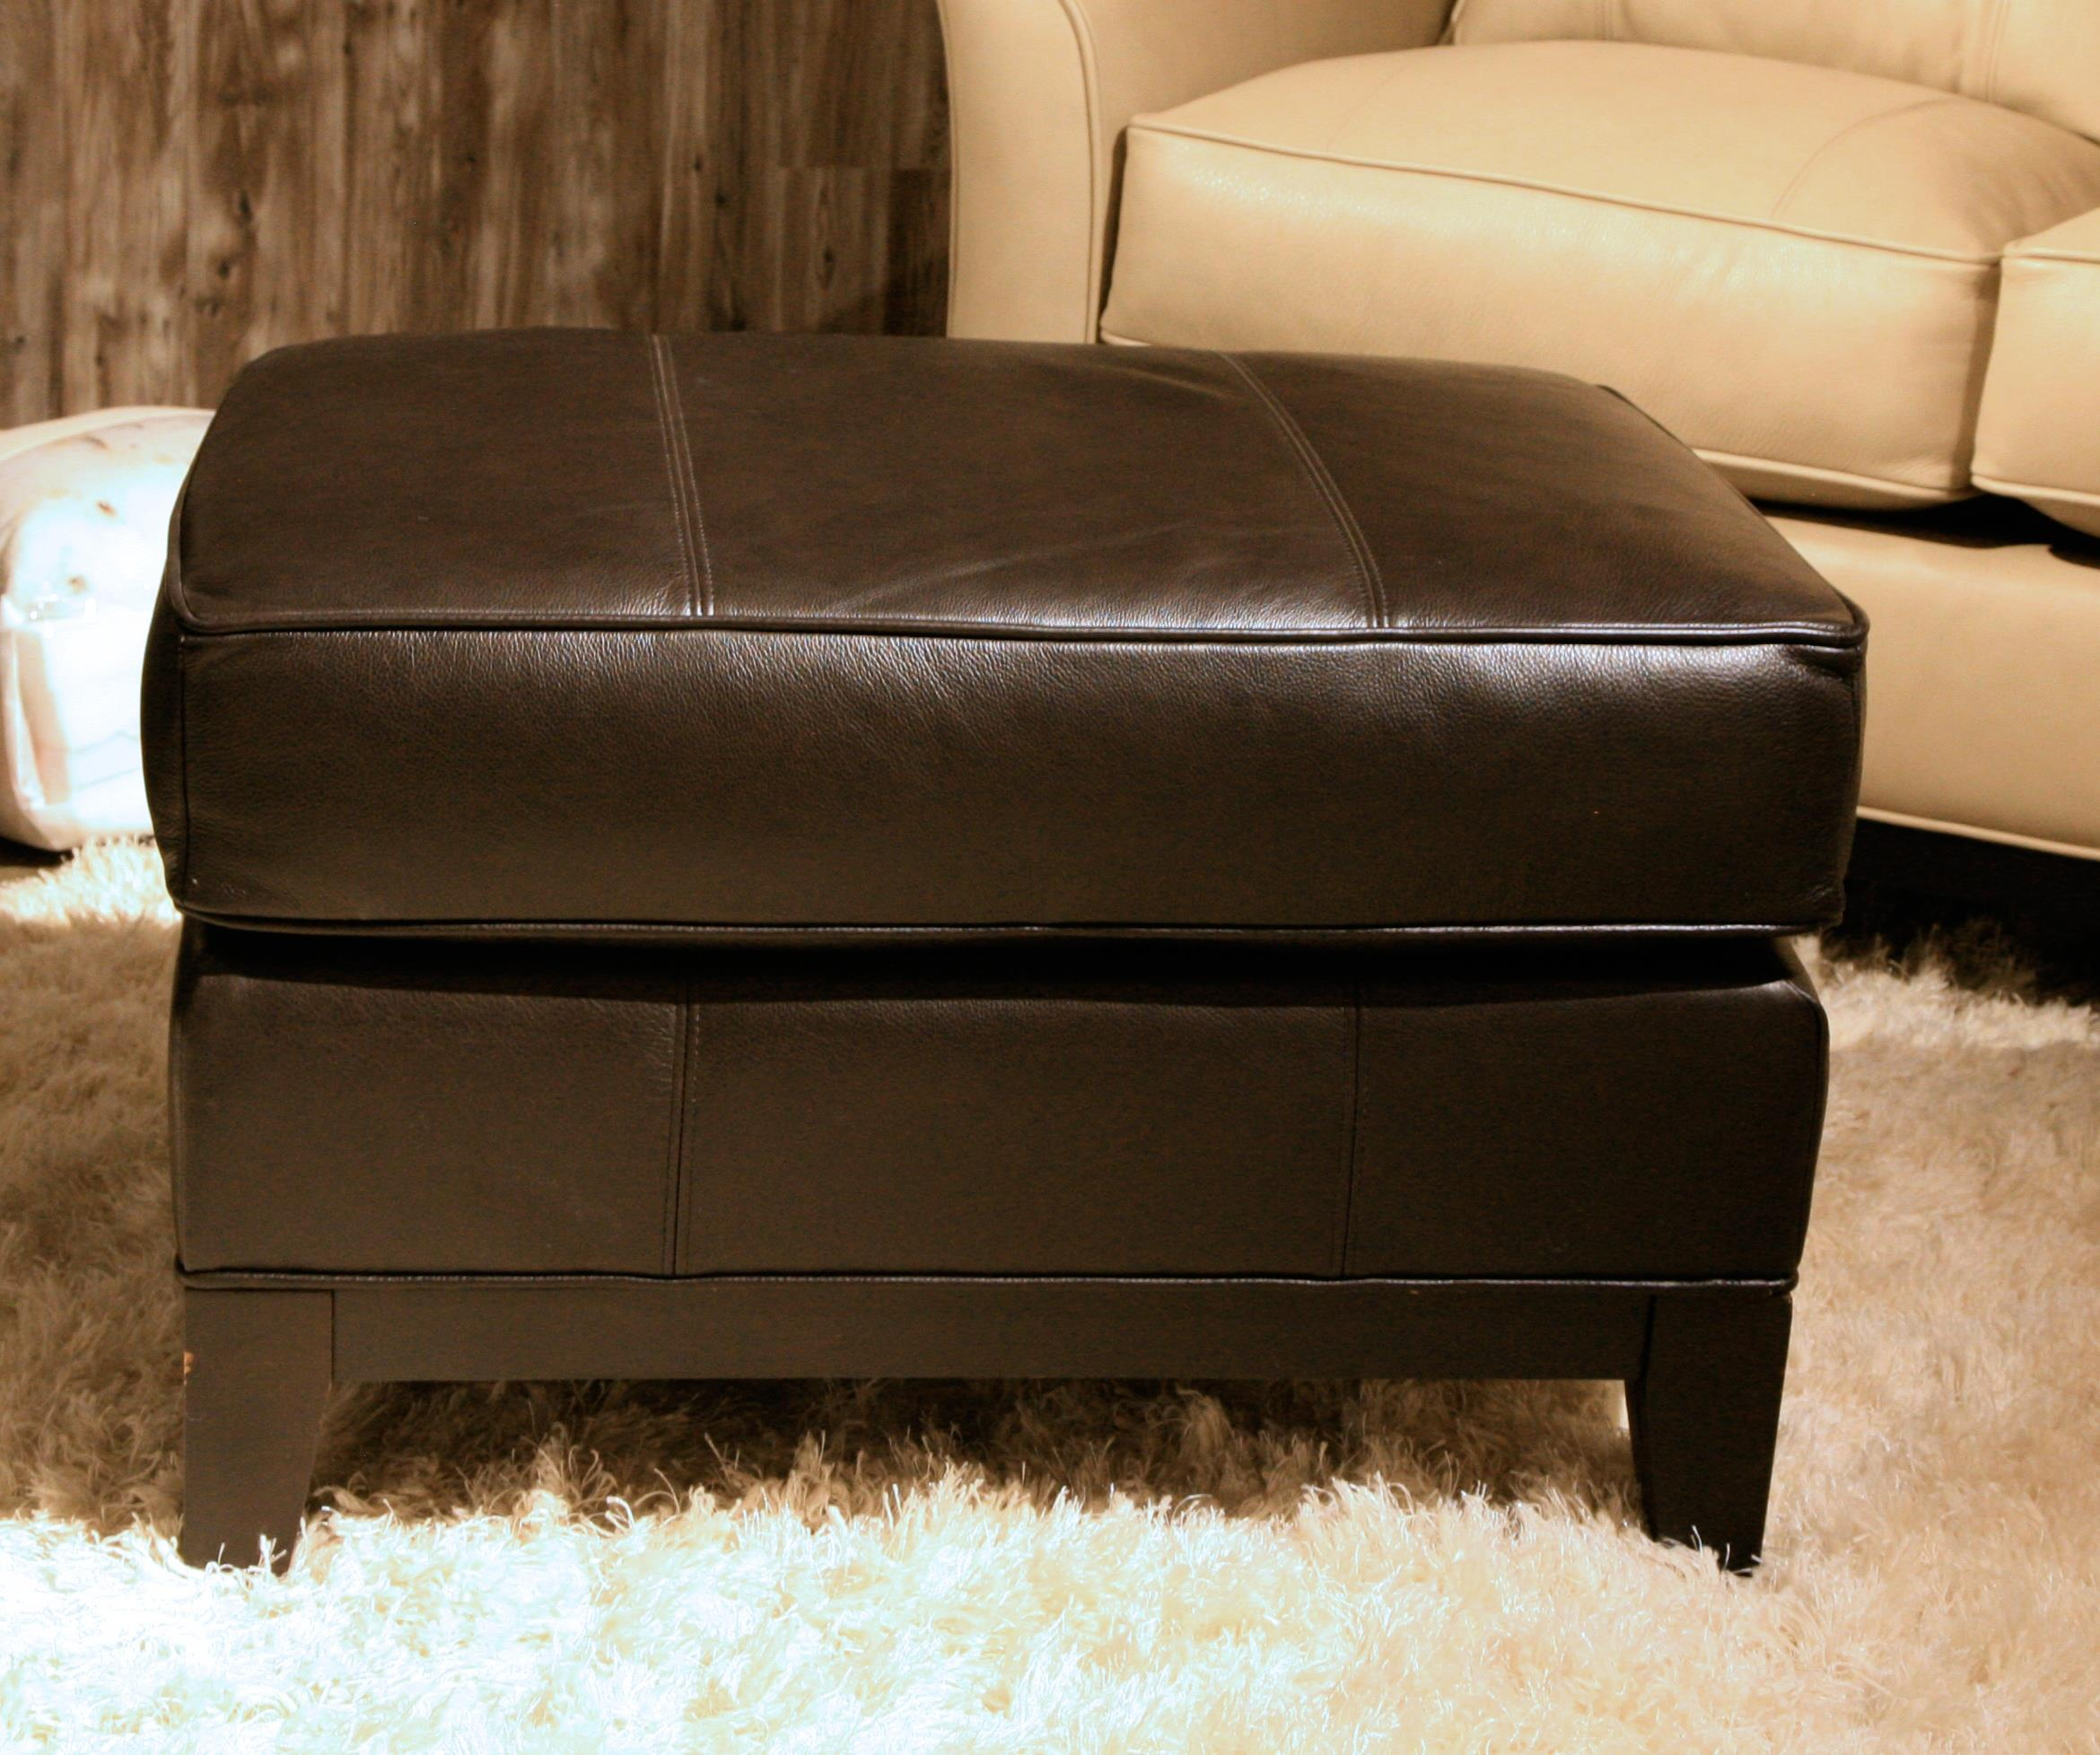 Broyhill Furniture Perspectives Ottoman - Item Number: L4445-5-0011-89